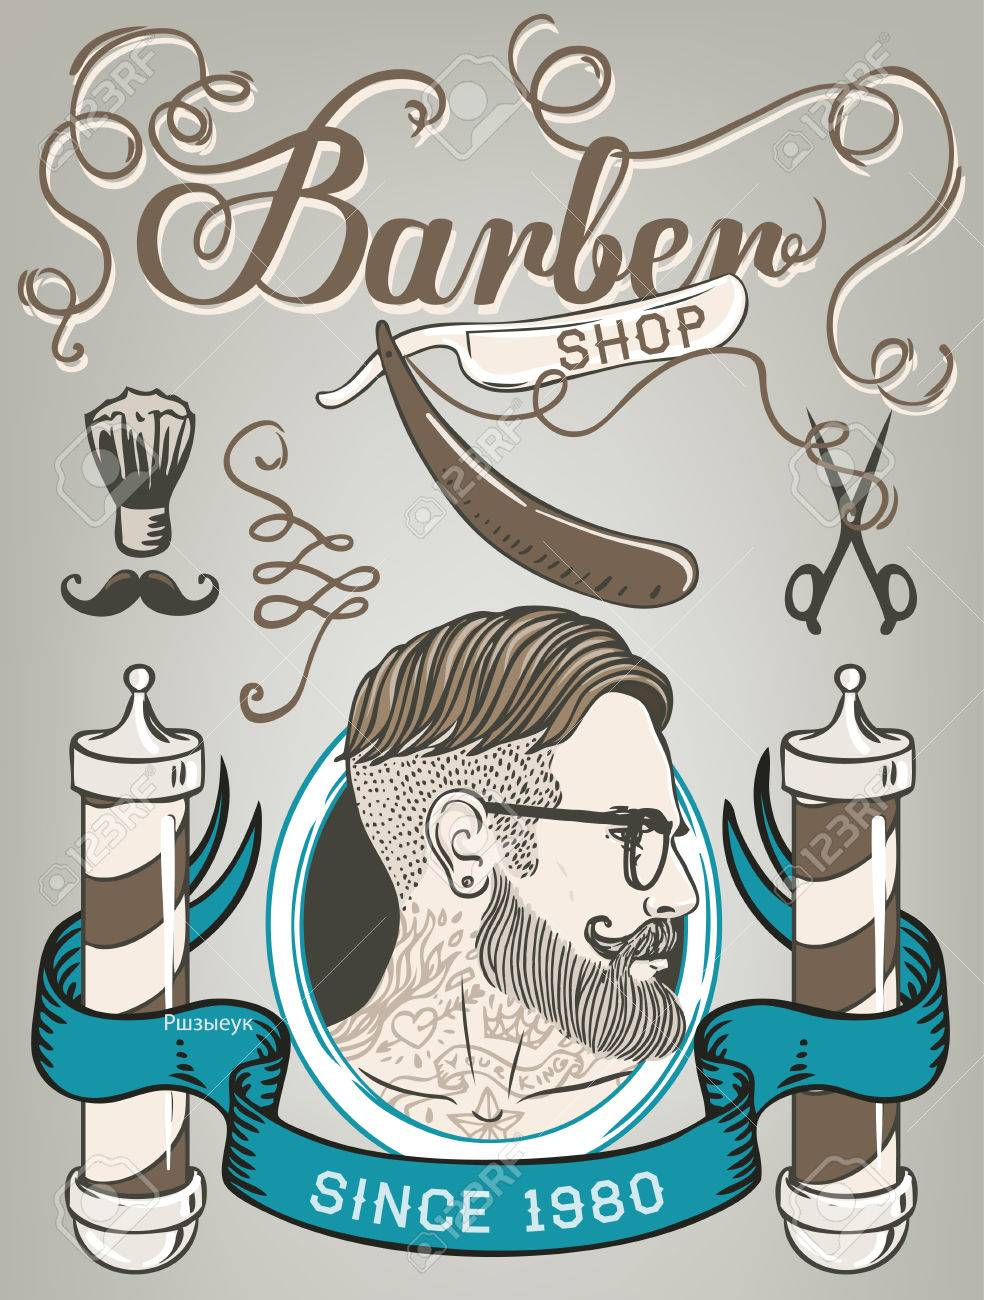 Hipster barber shop business card design template vector hipster barber shop business card design template vector illustration imagens 43448169 reheart Image collections